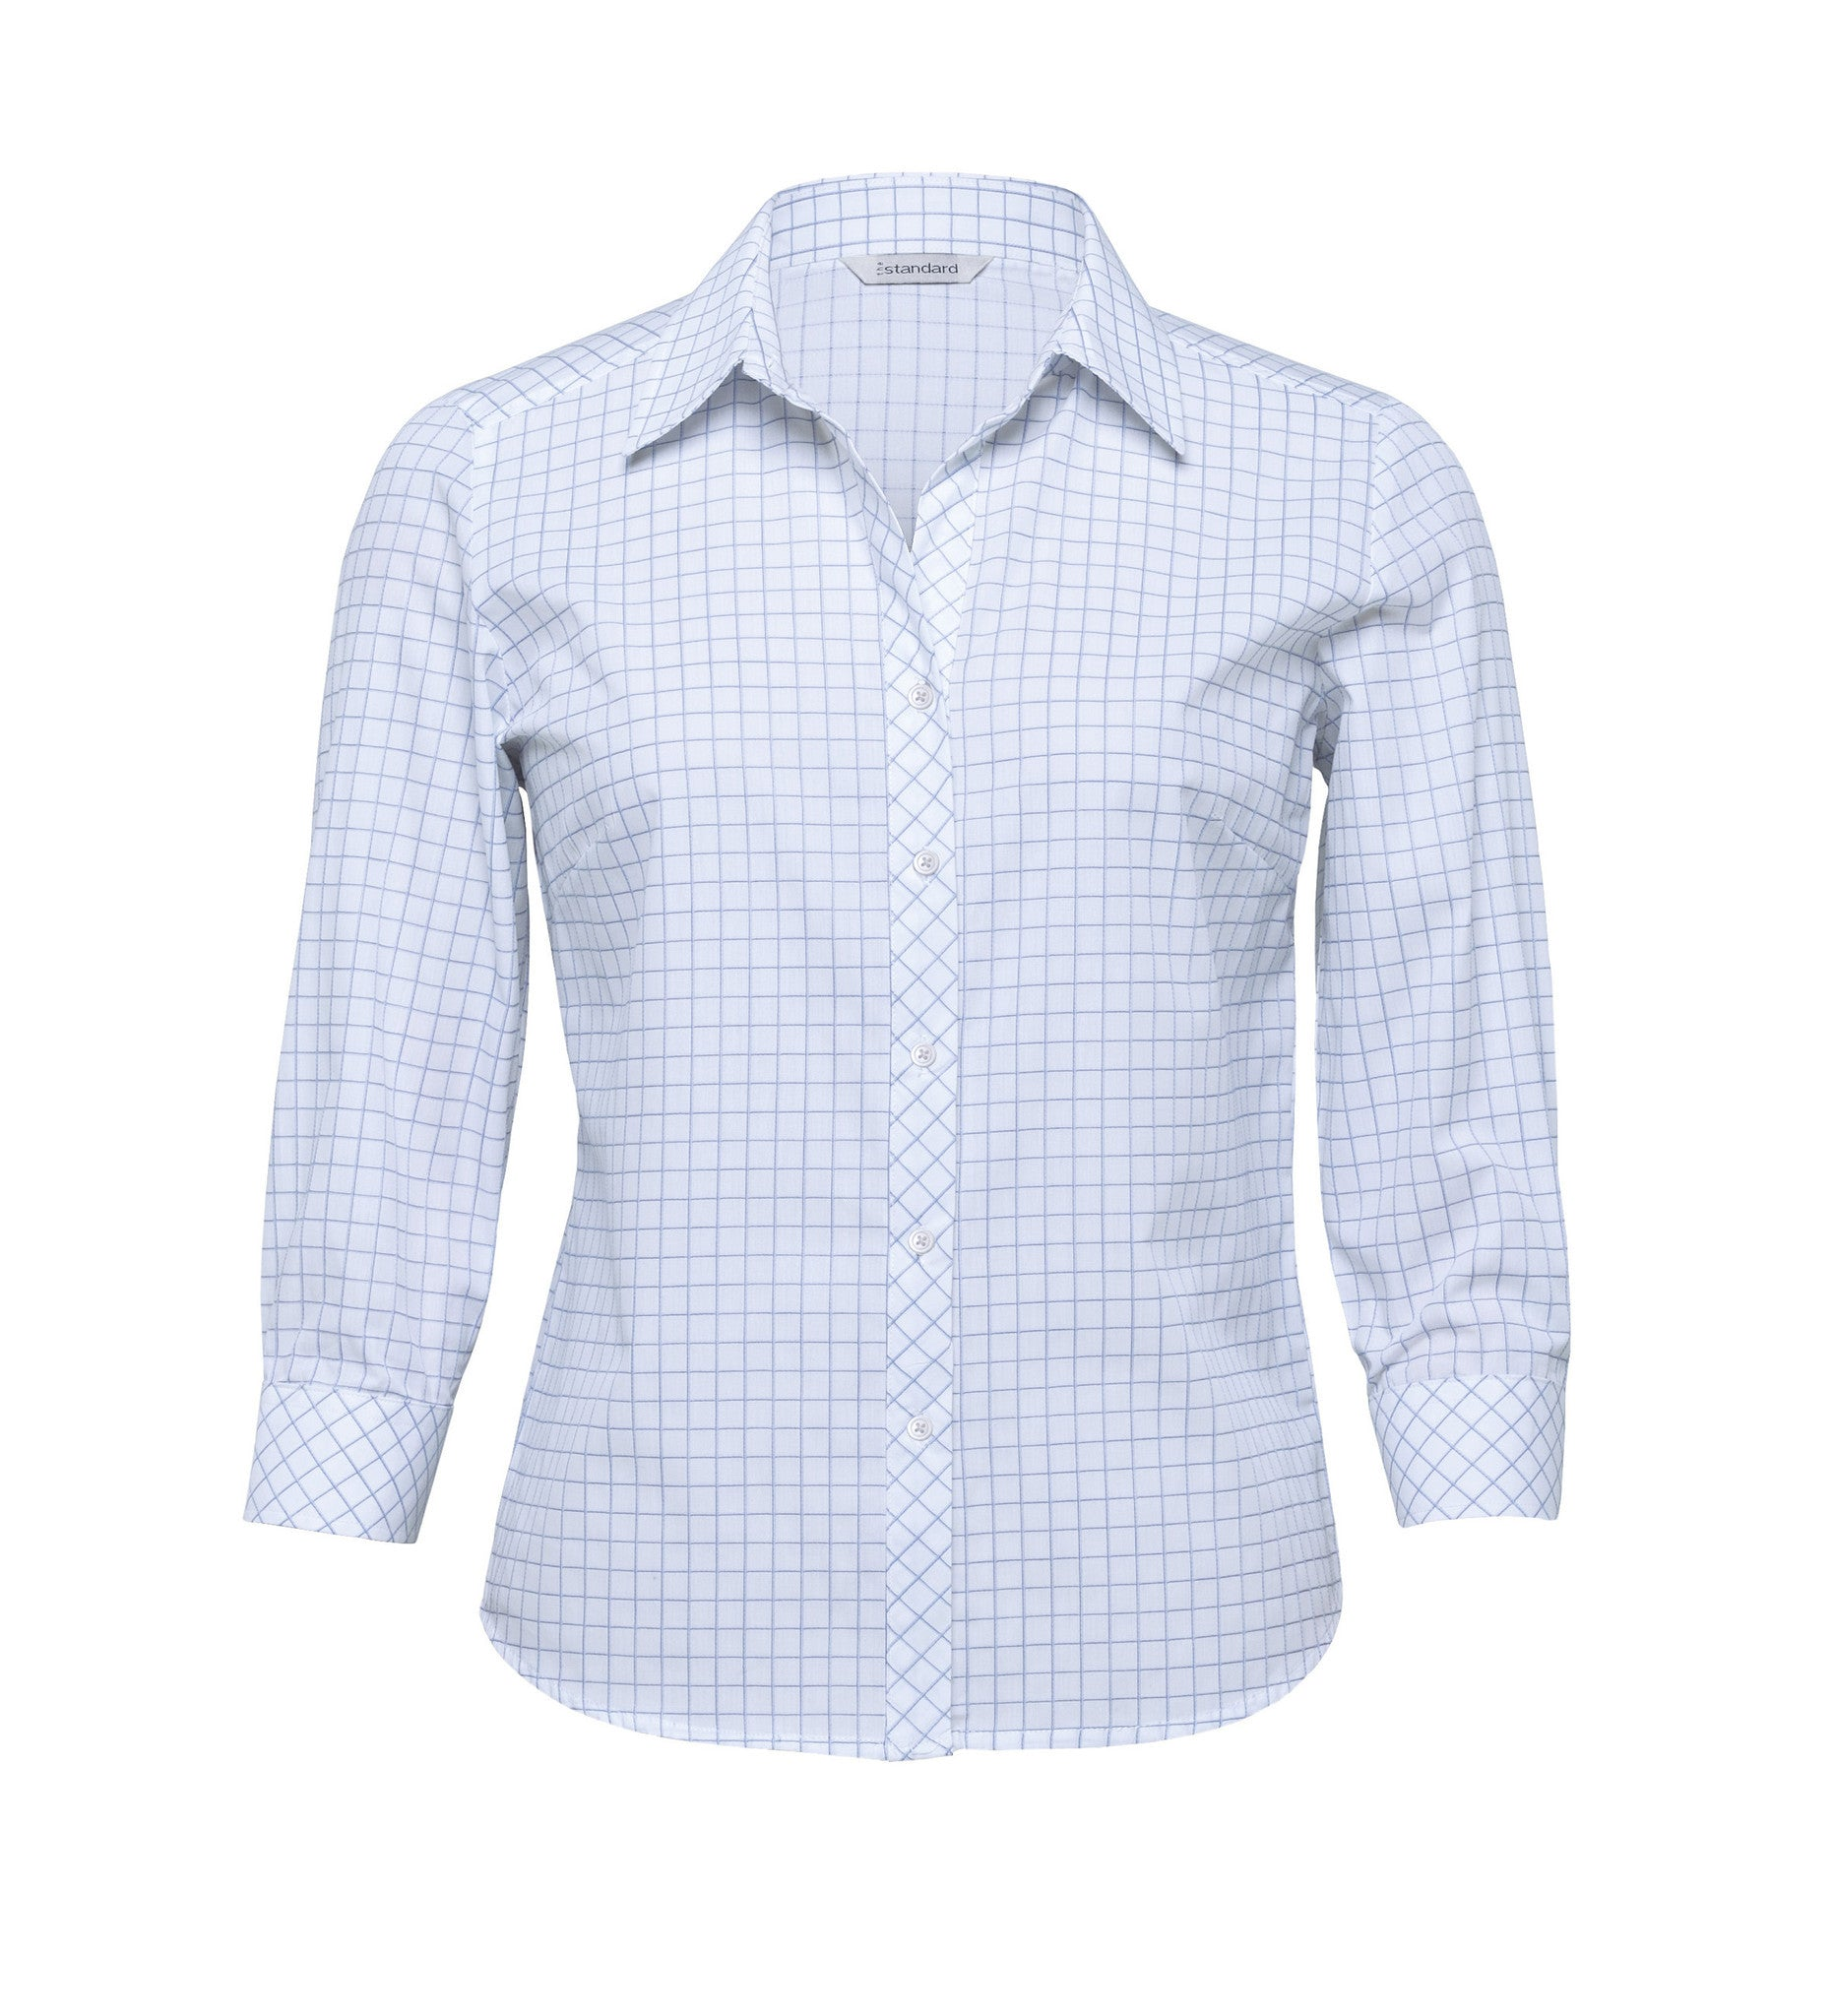 0a9190e0164fc Gear For Life-Gear For Life The Axiom Check Shirt – Womens-White . Gear For  Life-Gear For Life The Axiom Check Shirt – Womens-White